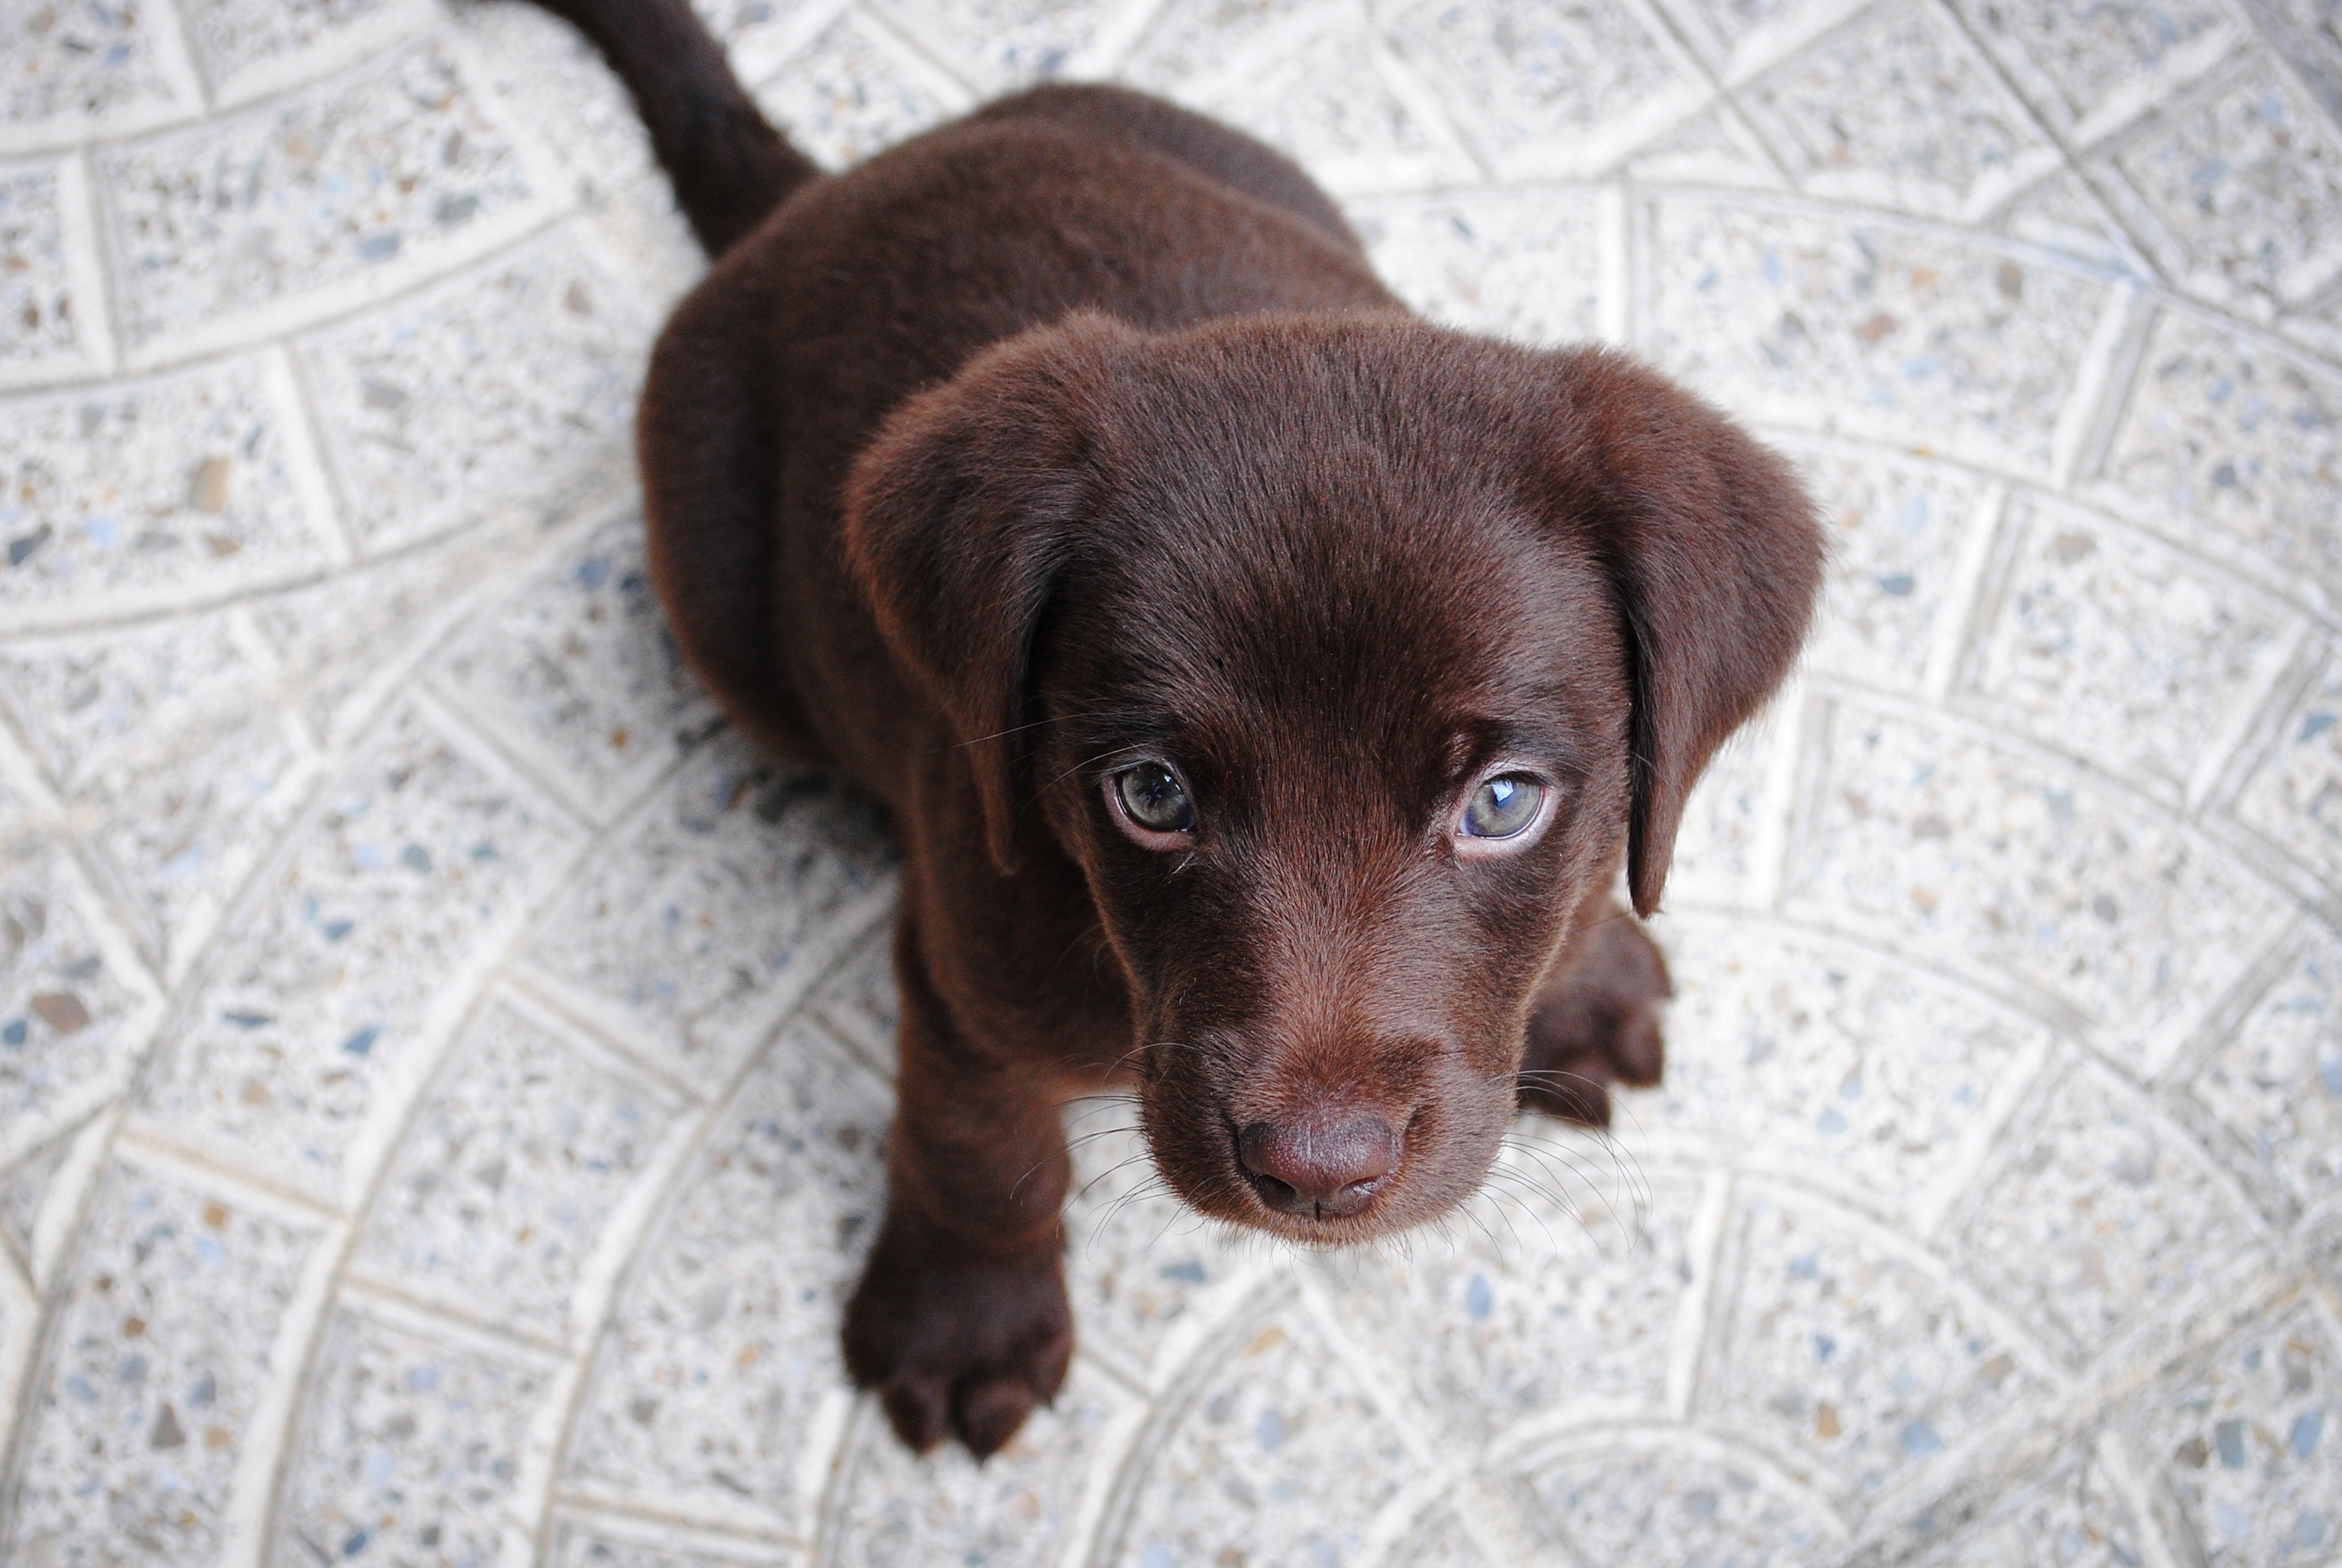 chocolate lab puppy sitting on light gray circular tile floor looking up at camera